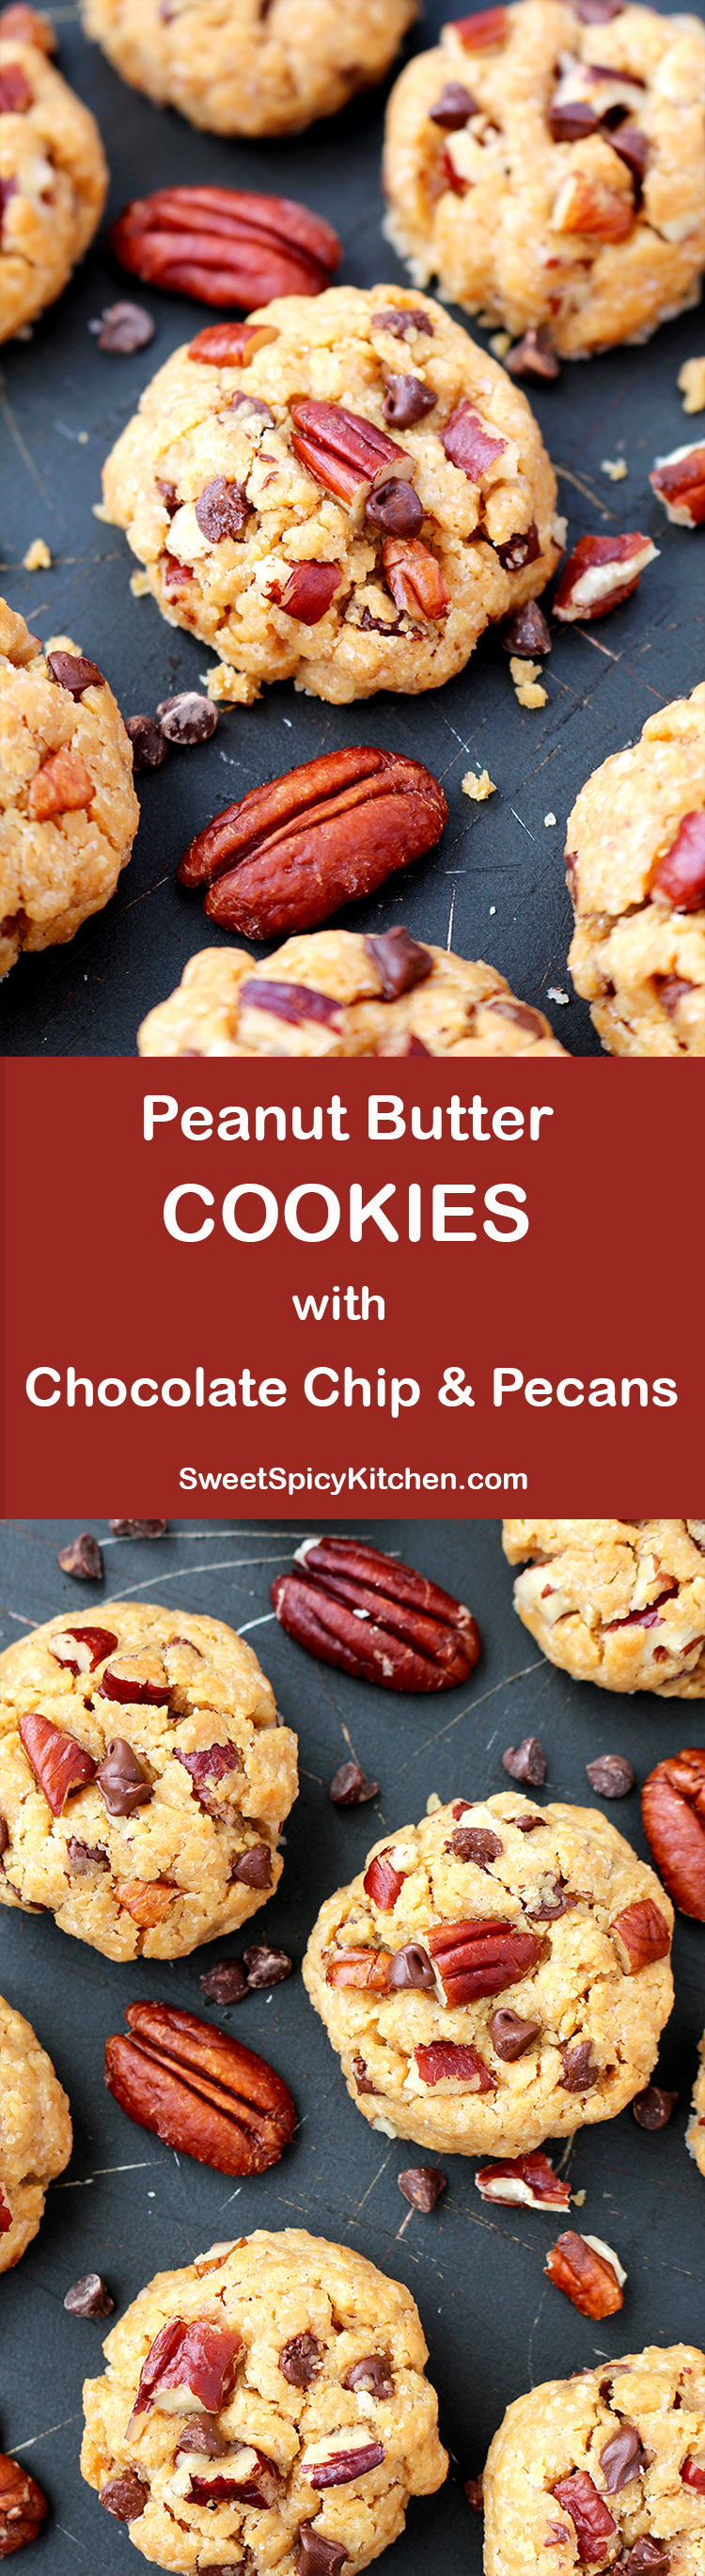 Peanut Butter Cookies with Chocolate Chip and Pecans